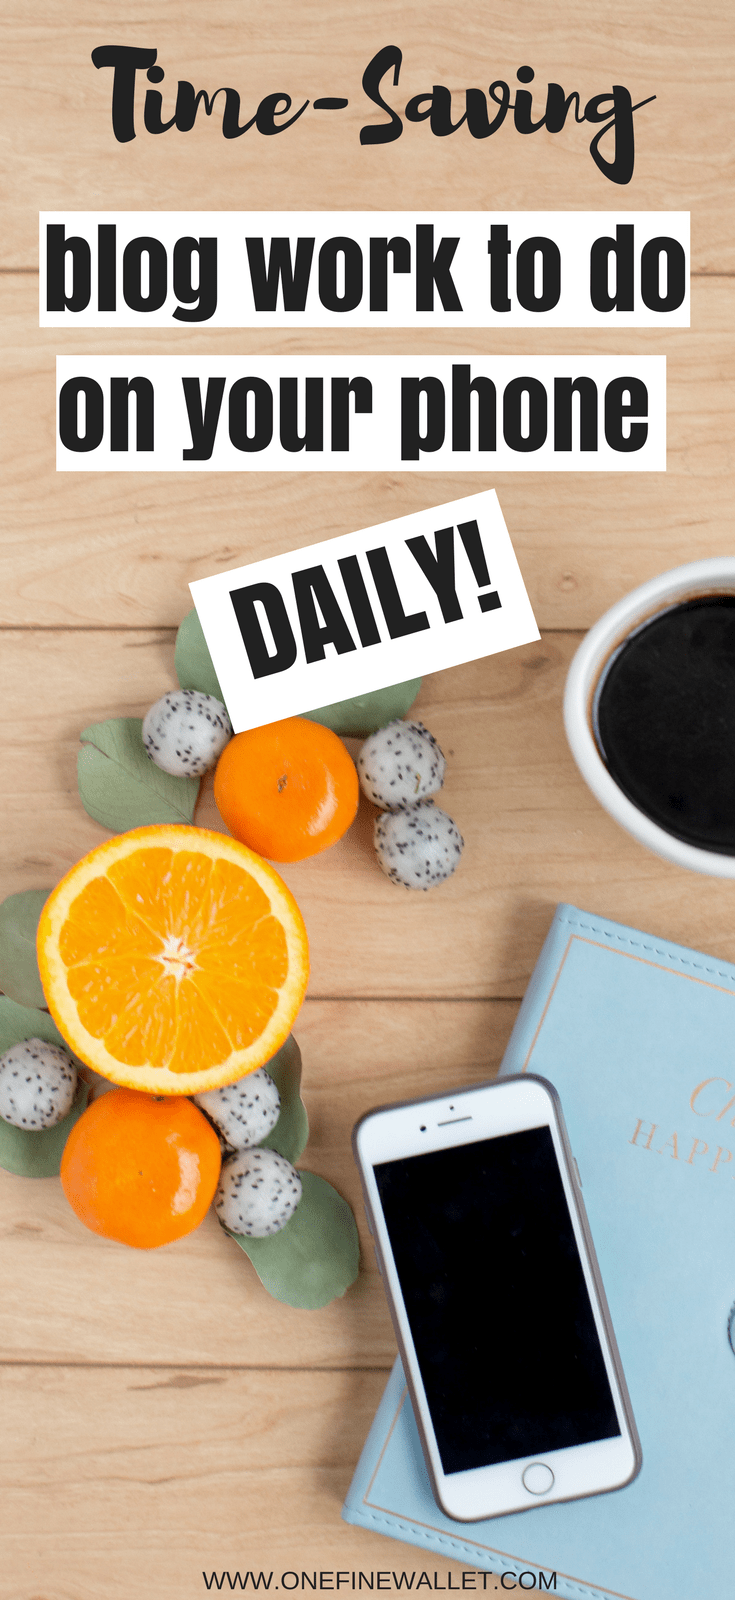 A list of blogging tasks you can do from your phone and save time daily #blogging #makemoneyonline #startablog